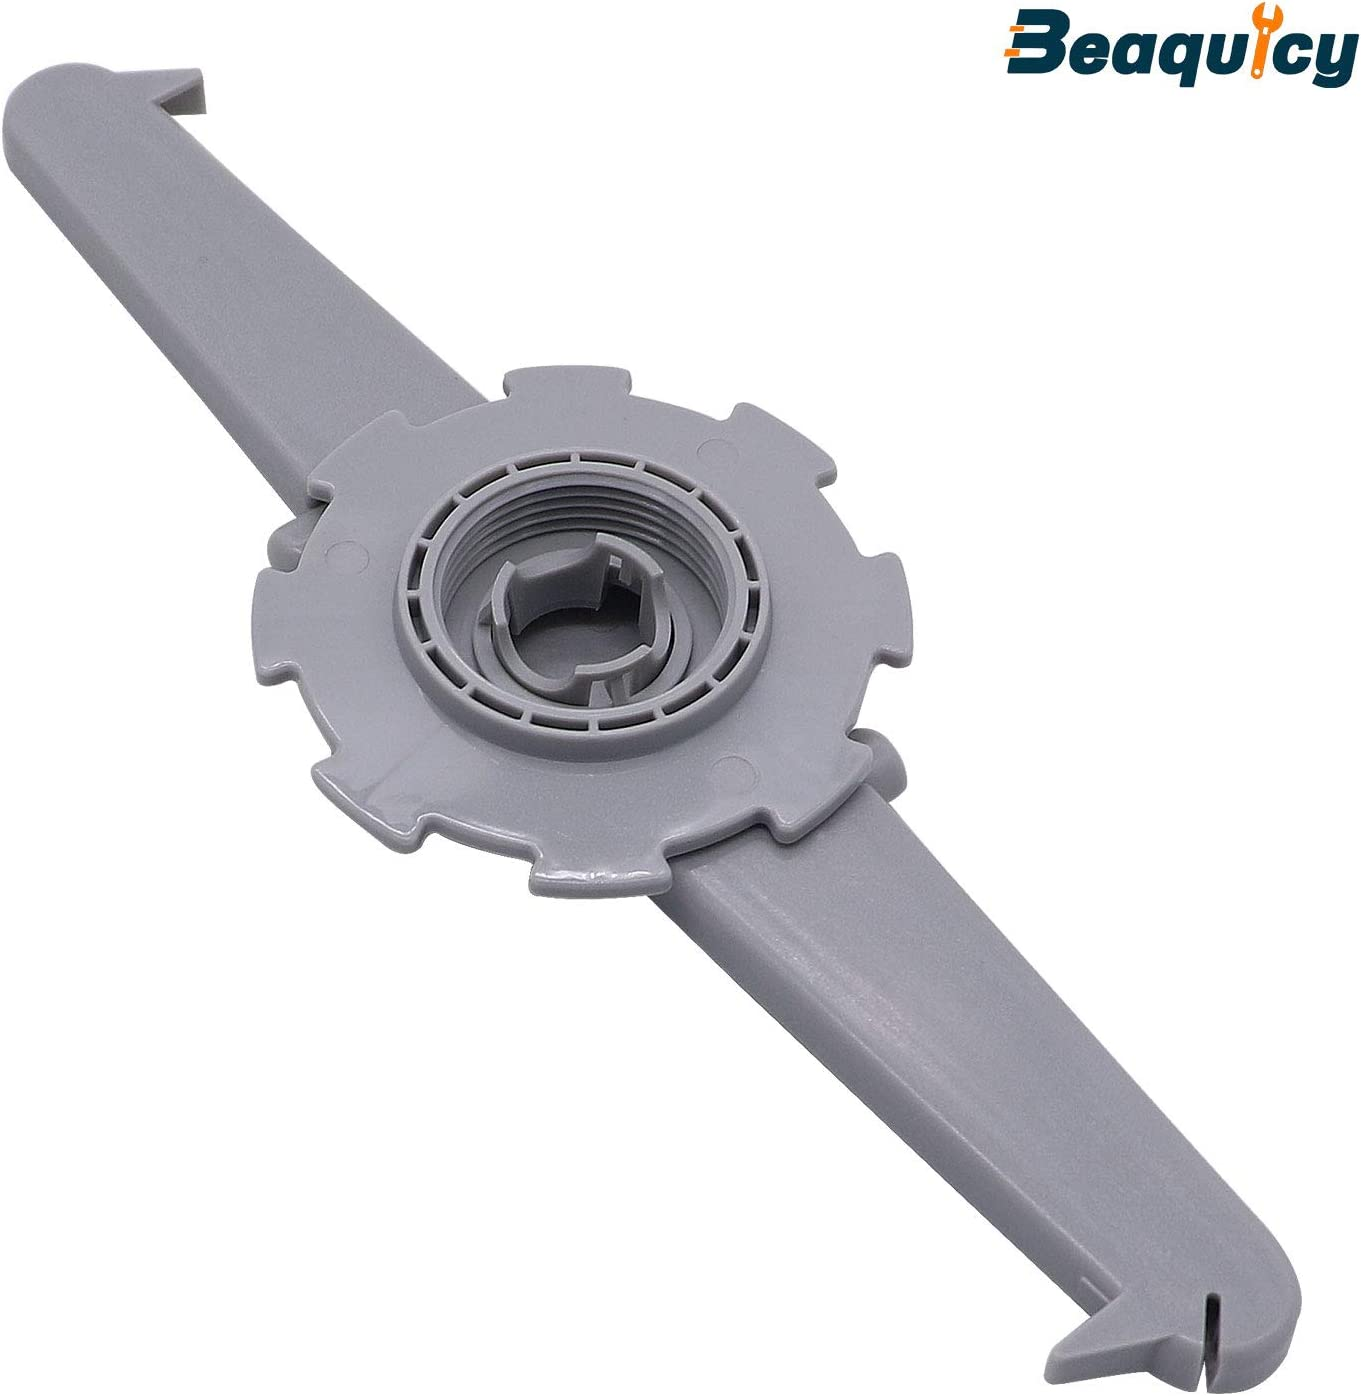 154754502 5304506516 Dishwasher Upper Top Spray Arm Assembly by Beaquicy - Replacement for Frigidaire Kenmore Dishwasher